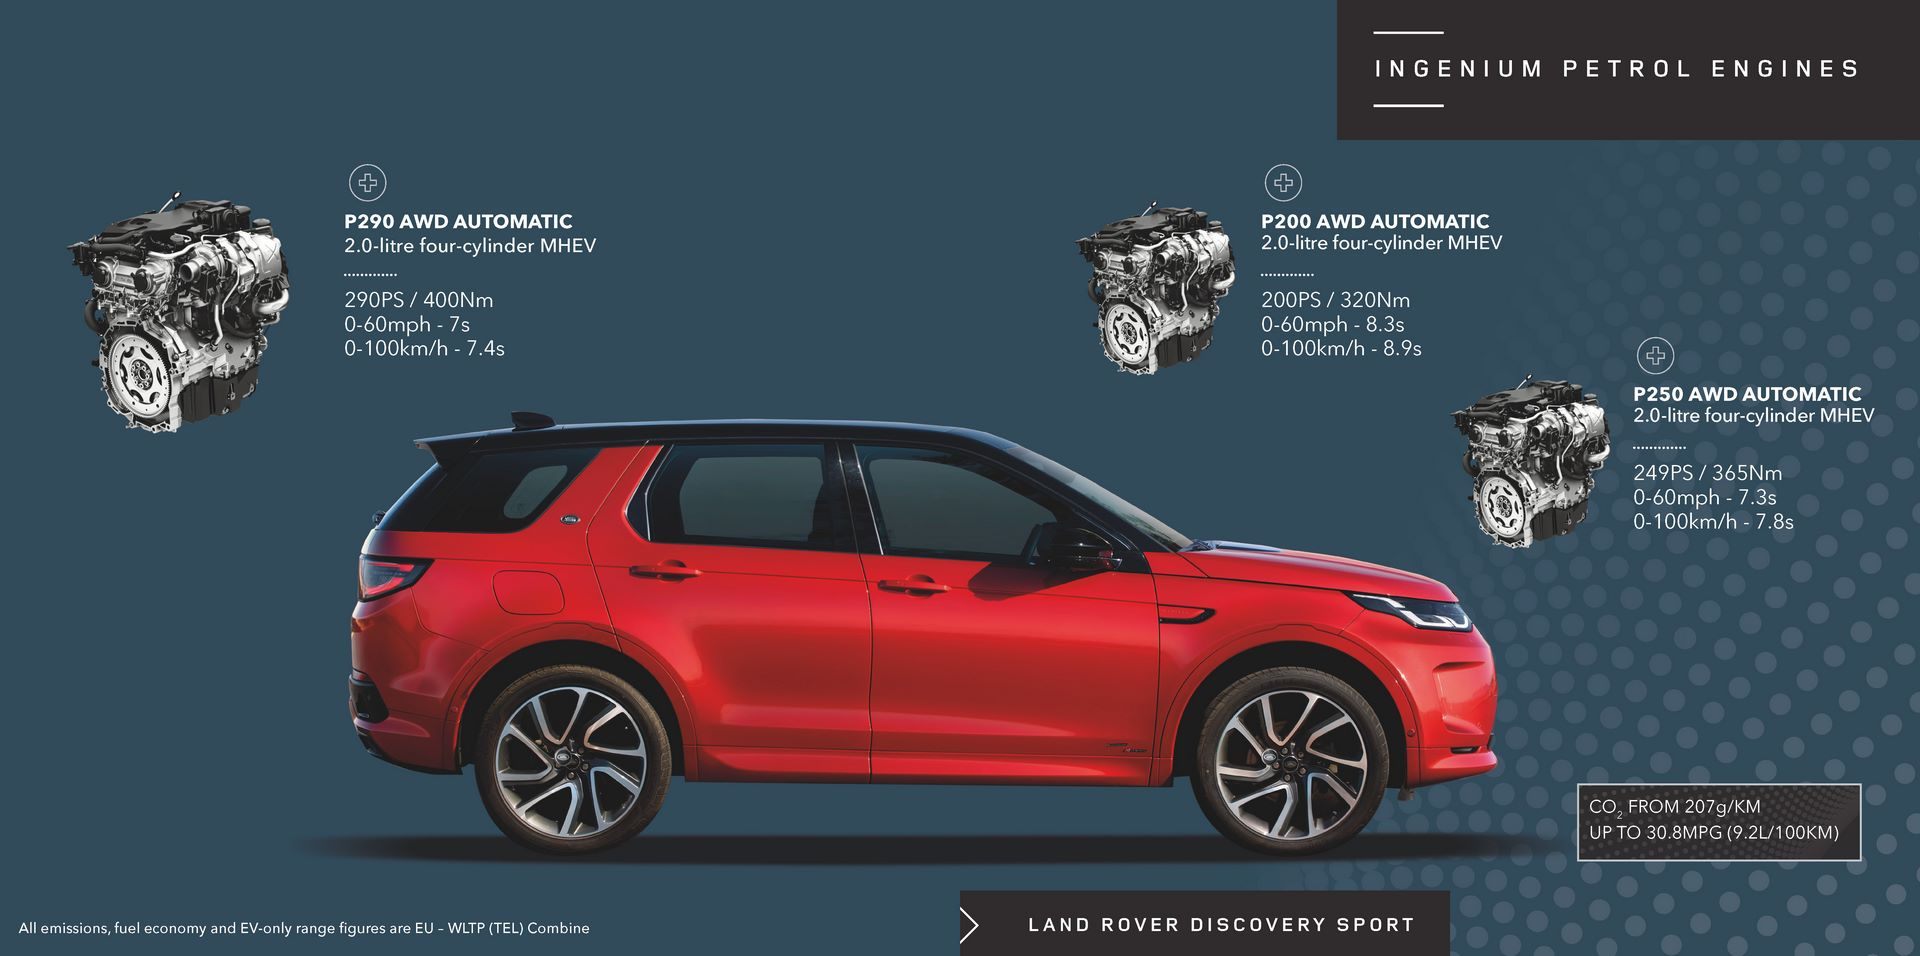 Range-Rover-Evoque-and-Land-Rover-Discovery-Sport-MHEV-diesel-53